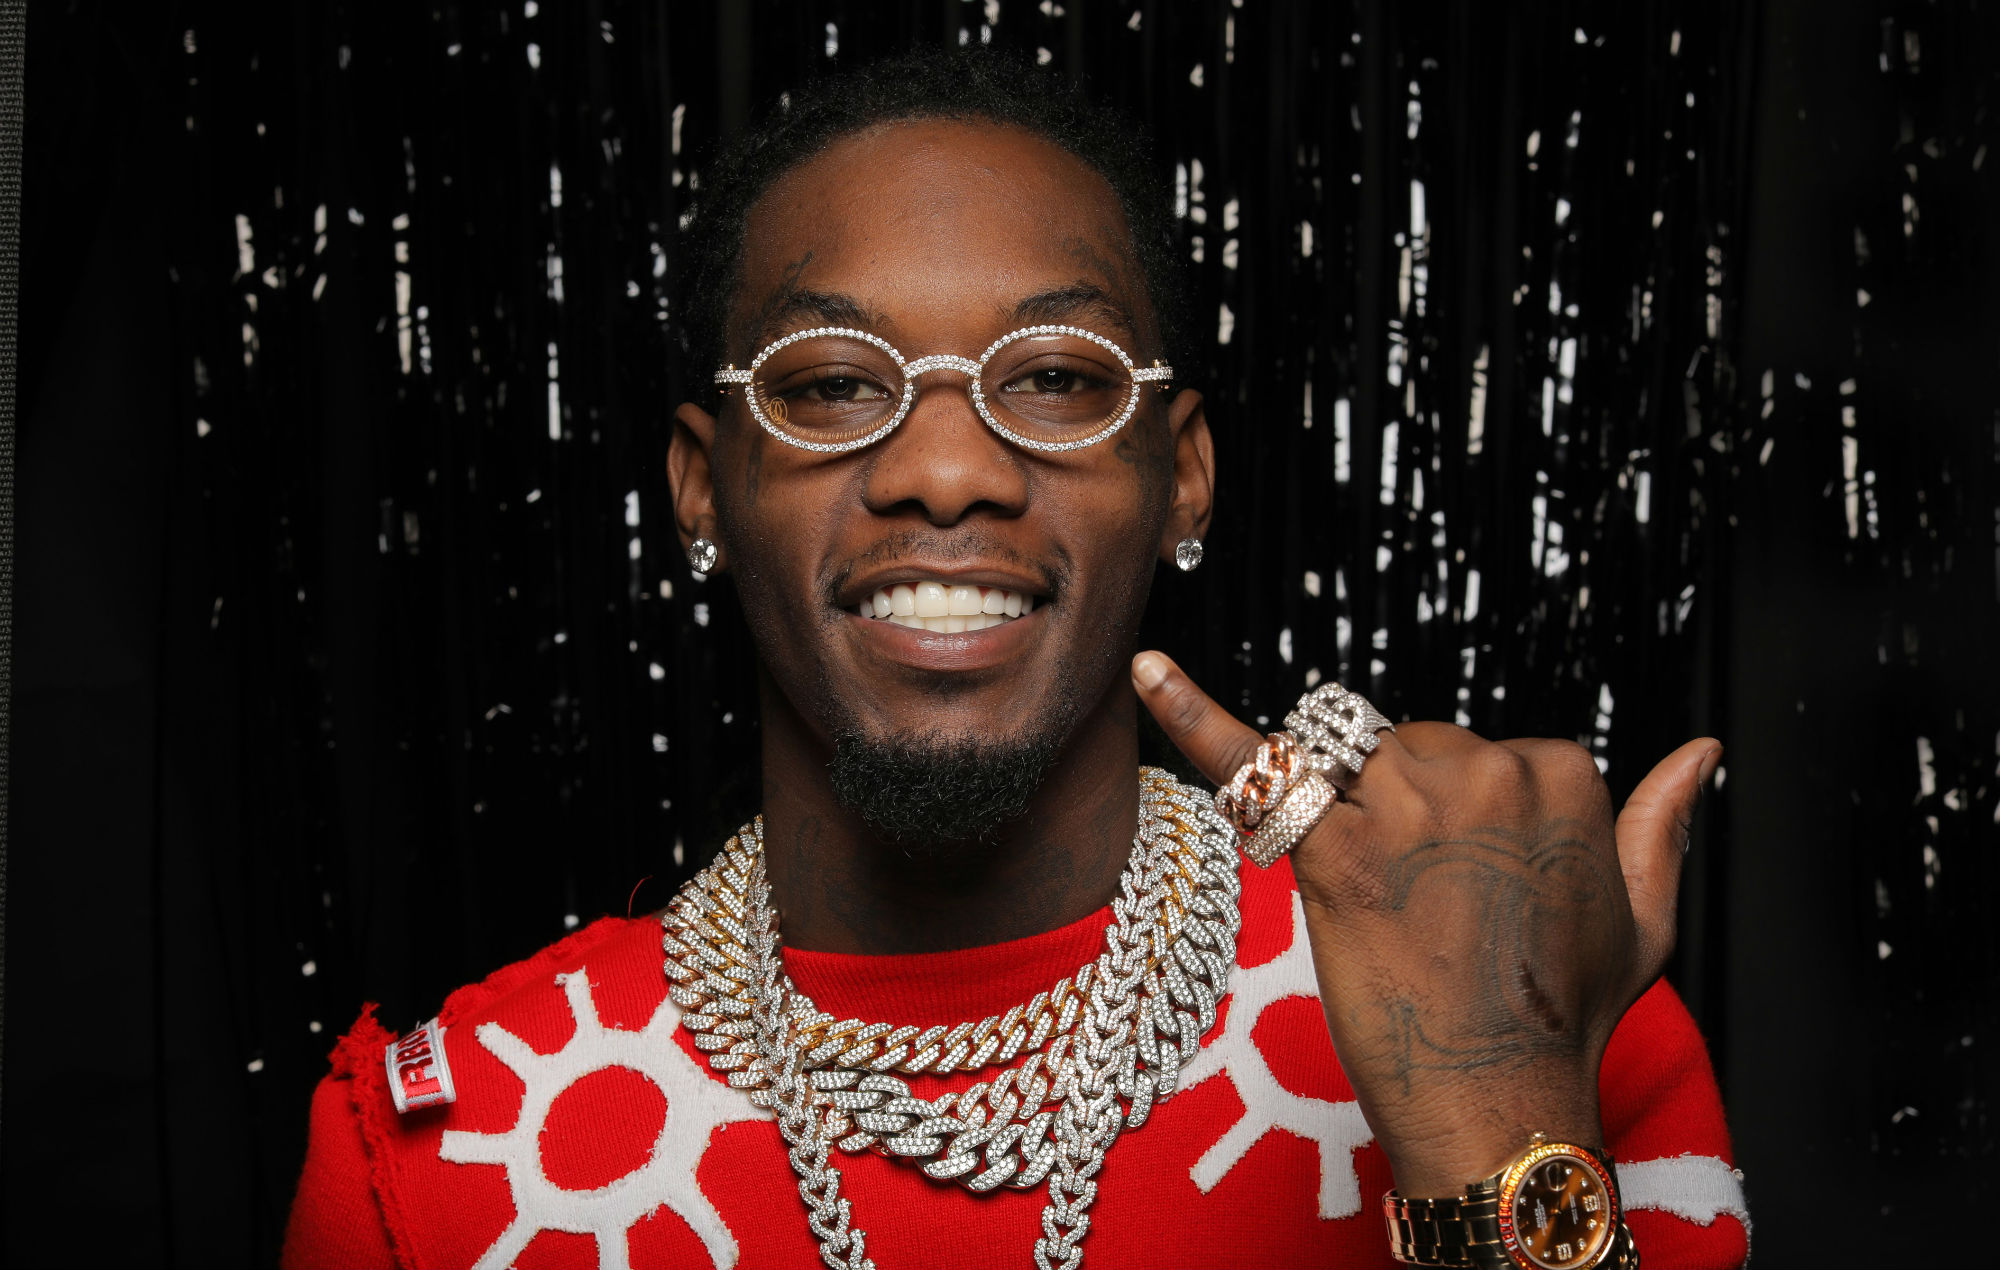 offset-shares-a-photo-of-the-last-time-he-saw-his-dad-before-the-emotional-reunion